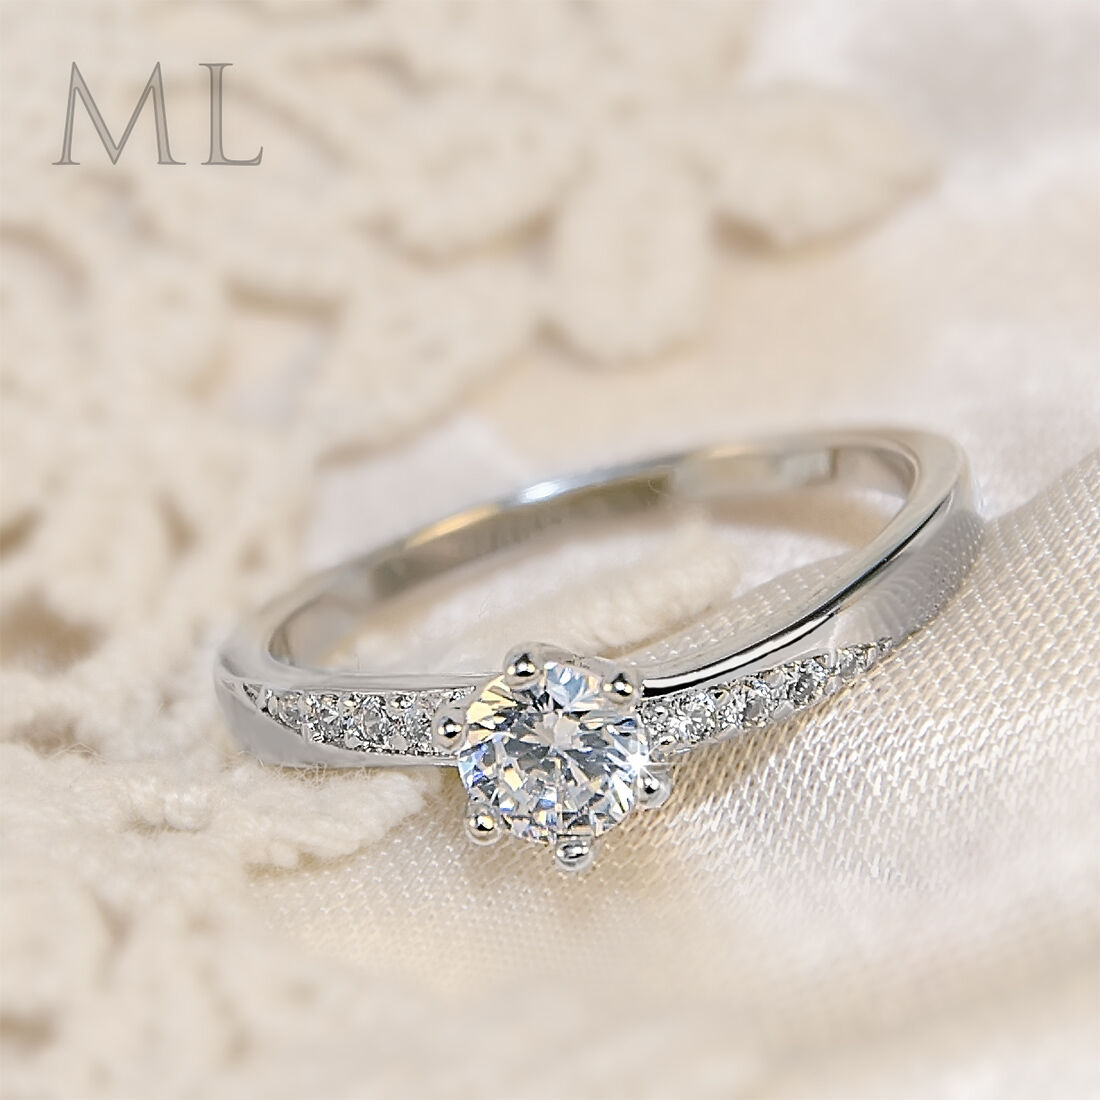 Ring - 0.75 CT Carat ROUND CUT Engagement Promise RING Silver Plated SIZE 4-10 Eve